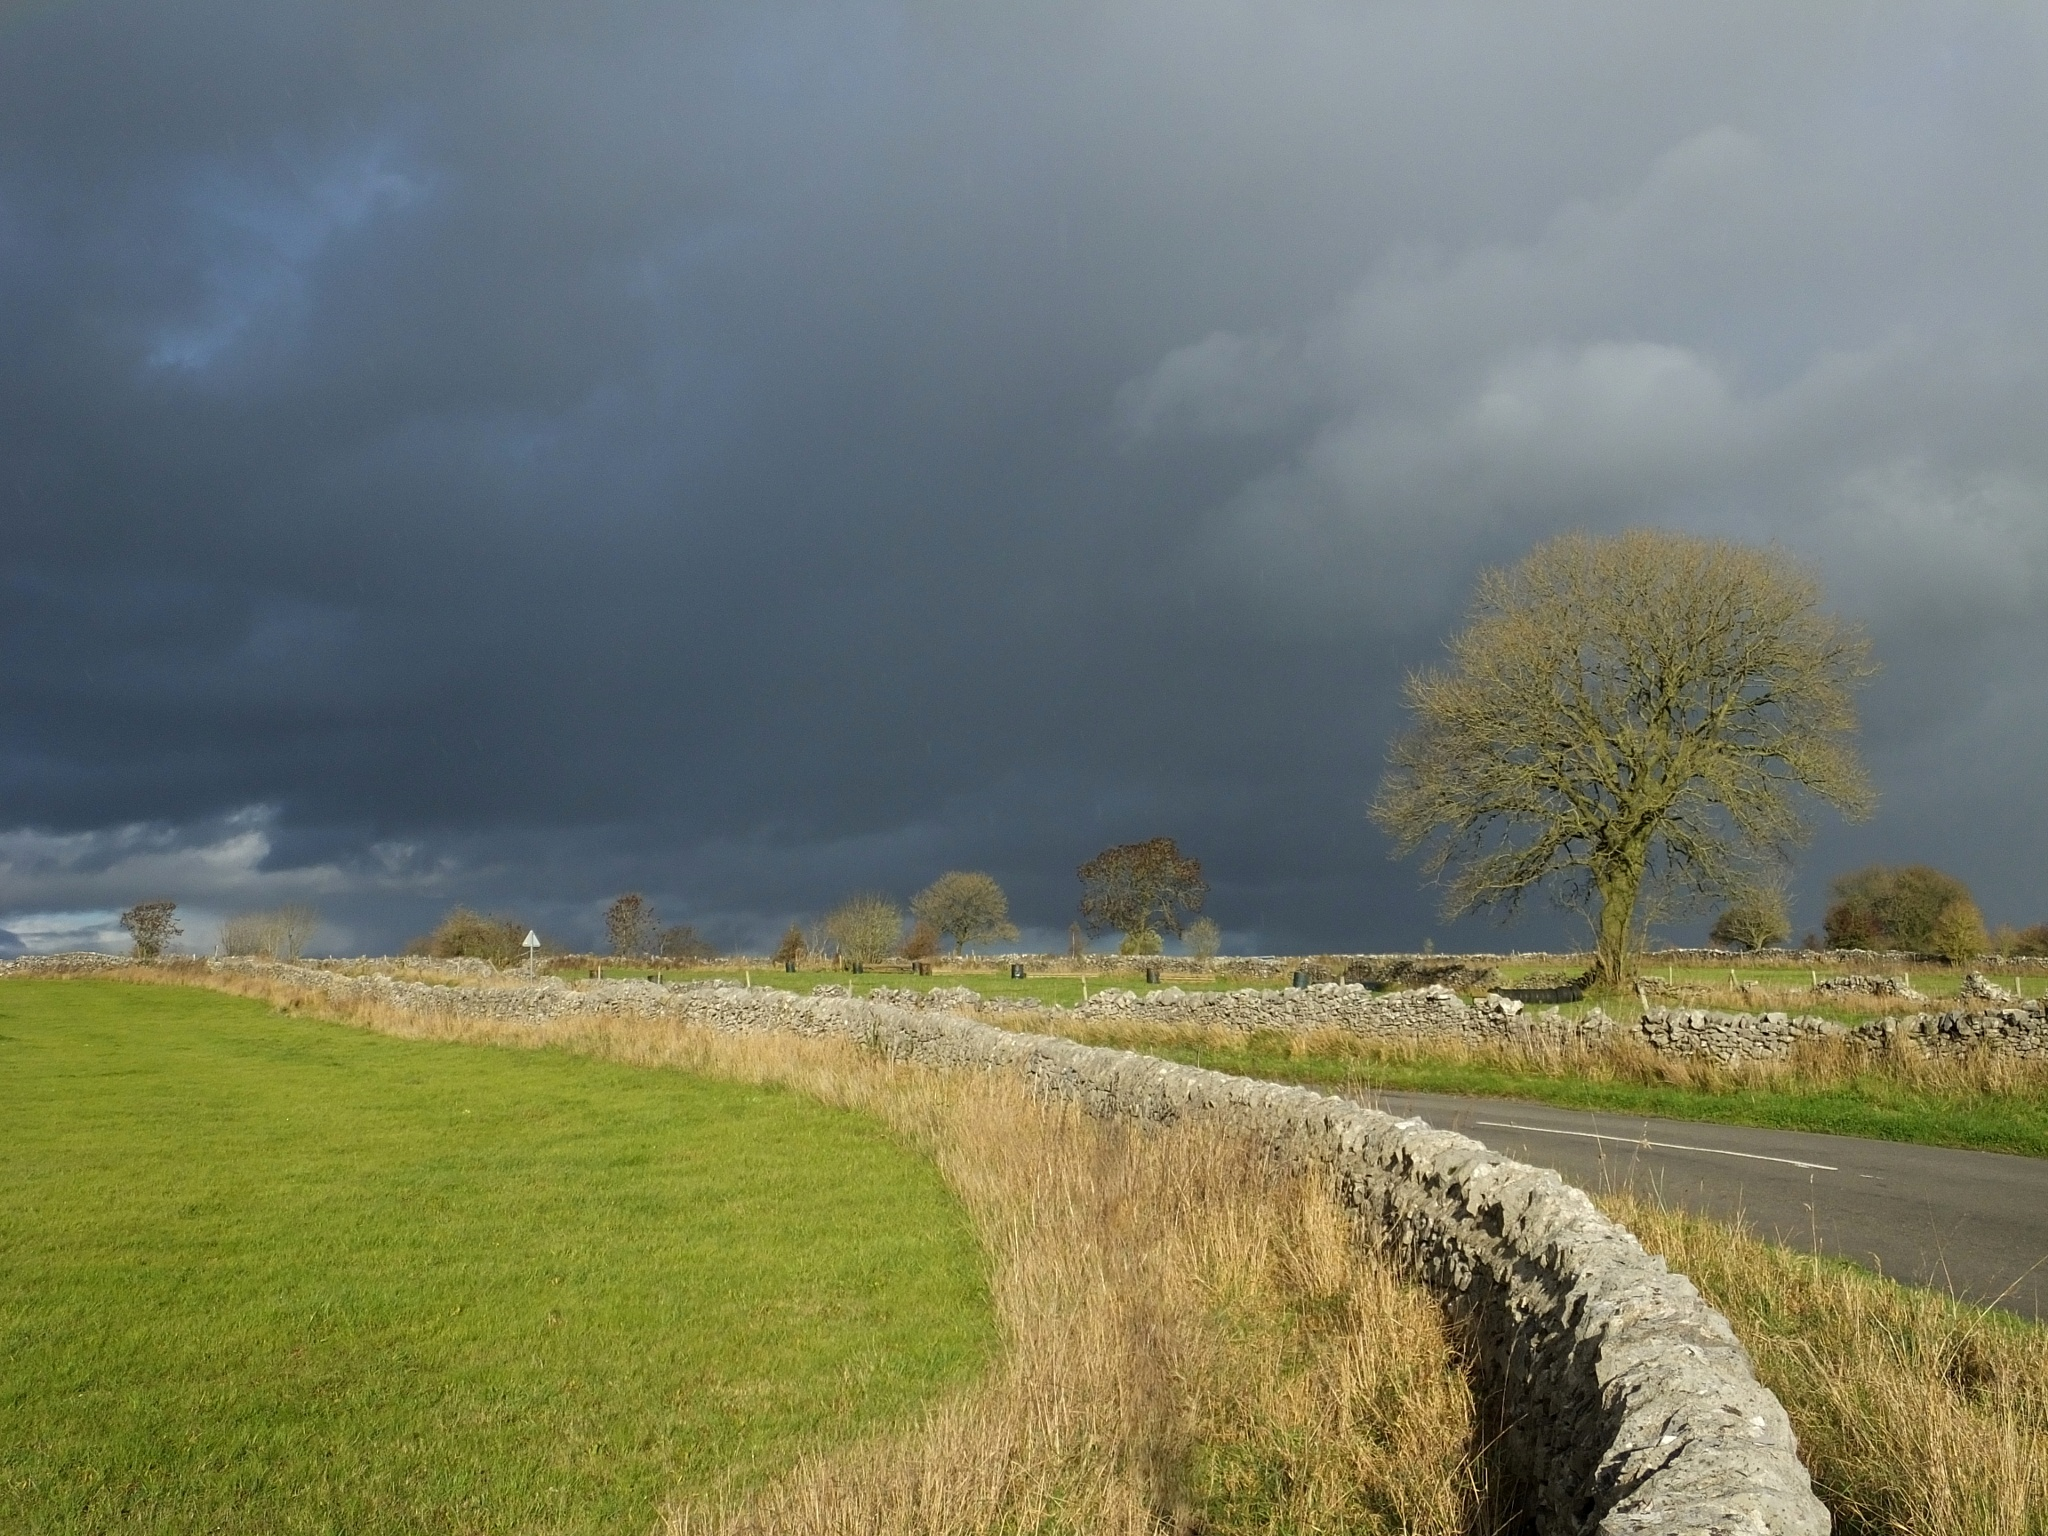 Gathering Storm Clouds by ianmoorcroft